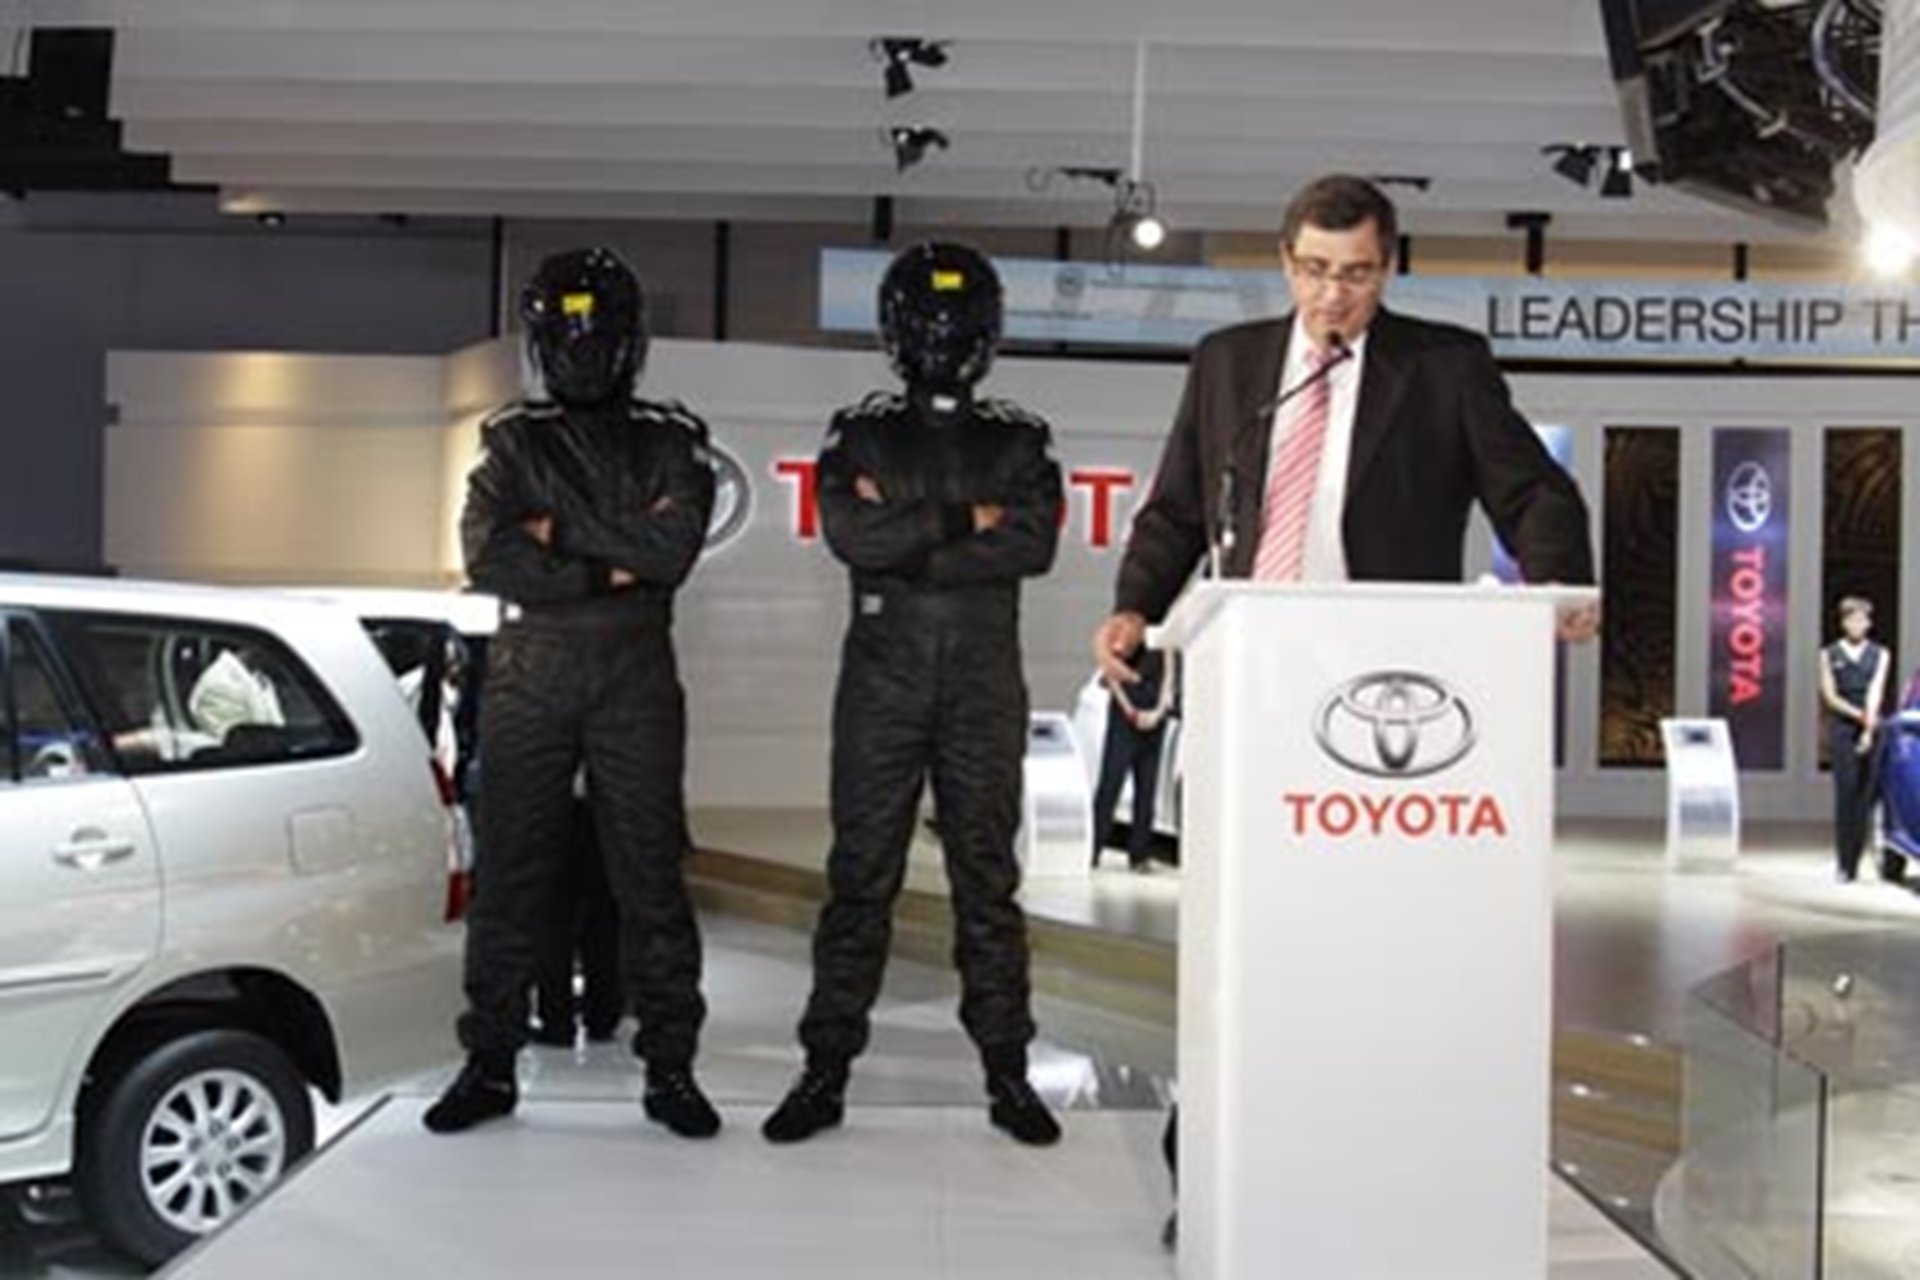 Toyota at Johannesburg Motor Show